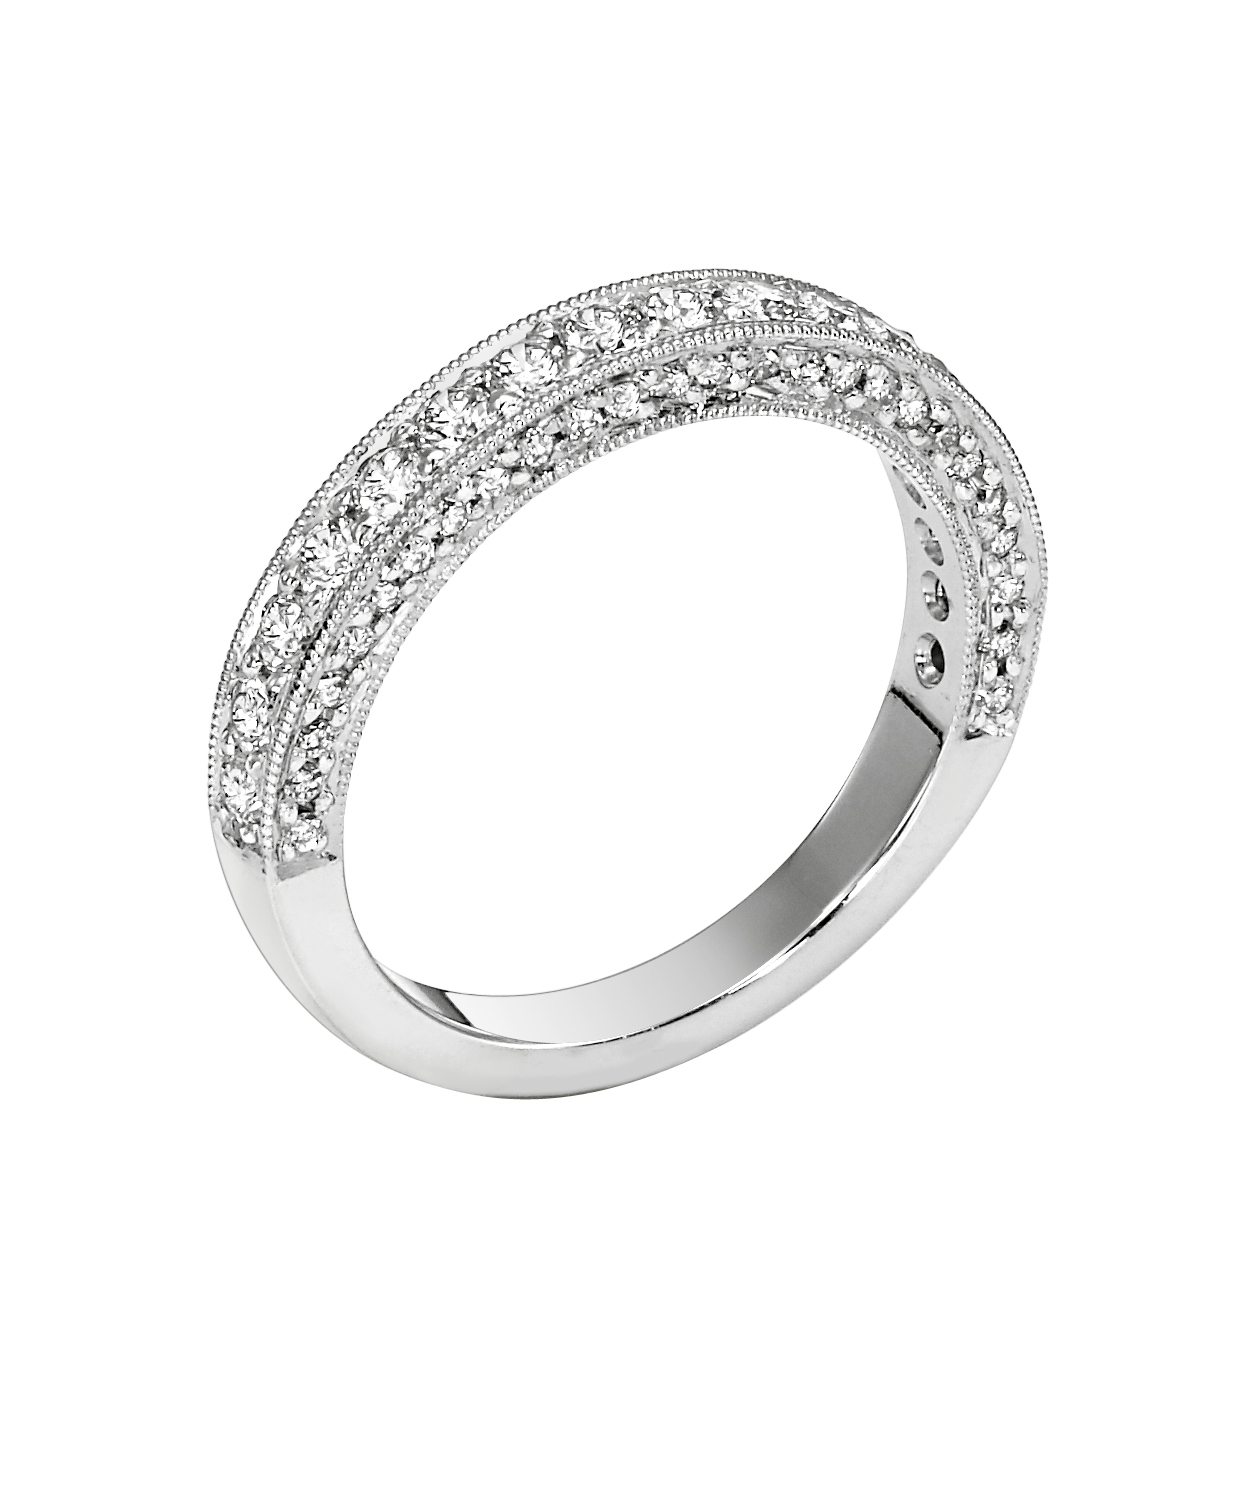 item for synthetic platinum ring lovely silver jewelry wedding rings sterling men nscd durable diamond plated